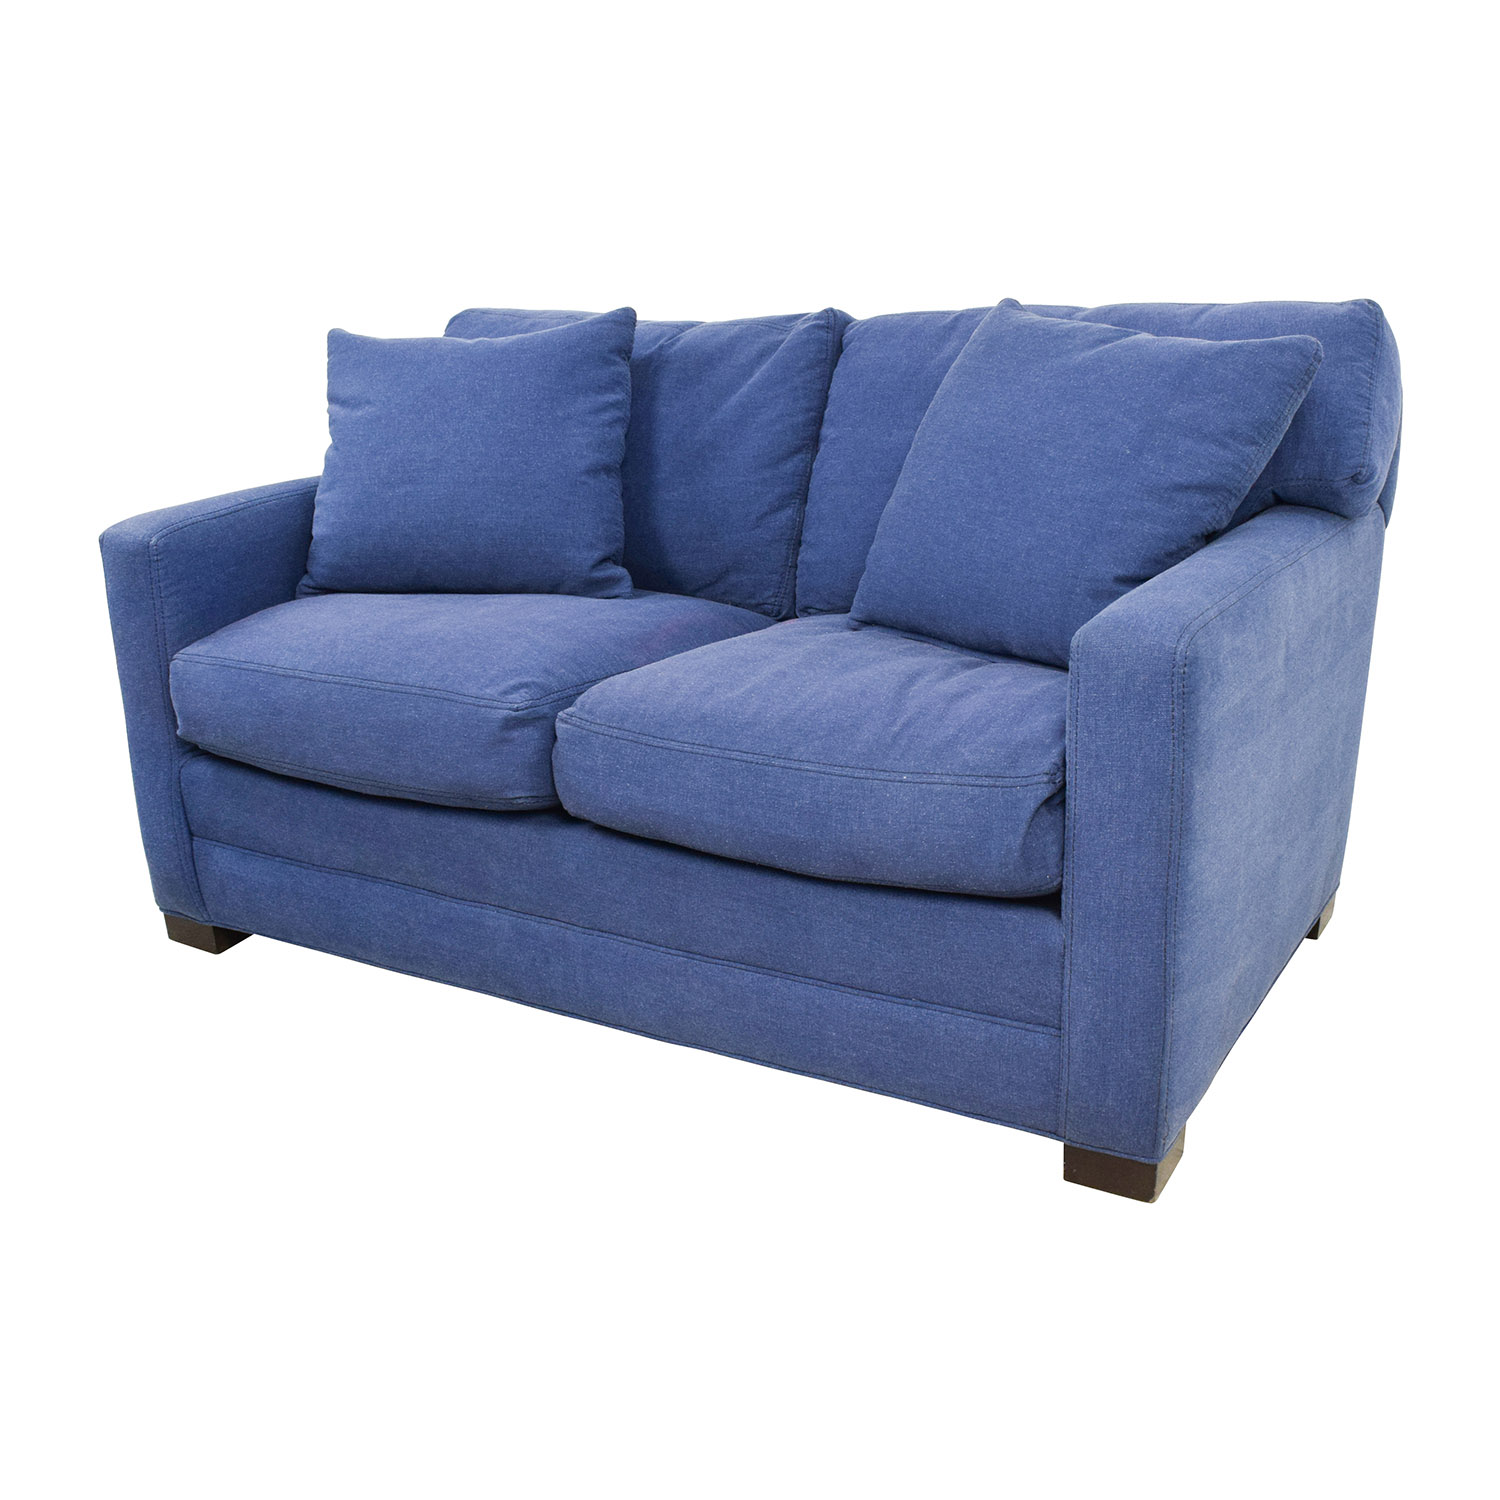 79 off lee industries lee industries denim blue loveseat sofas Denim couch and loveseat